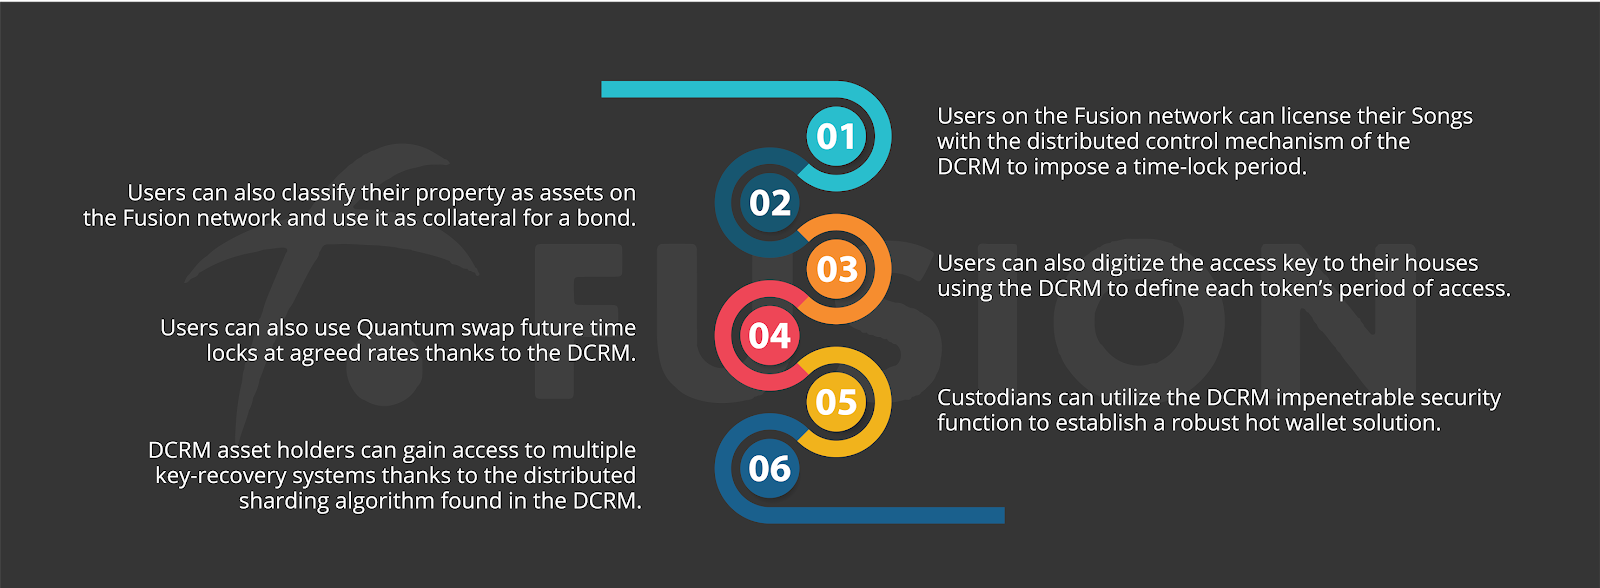 Fusion's use cases